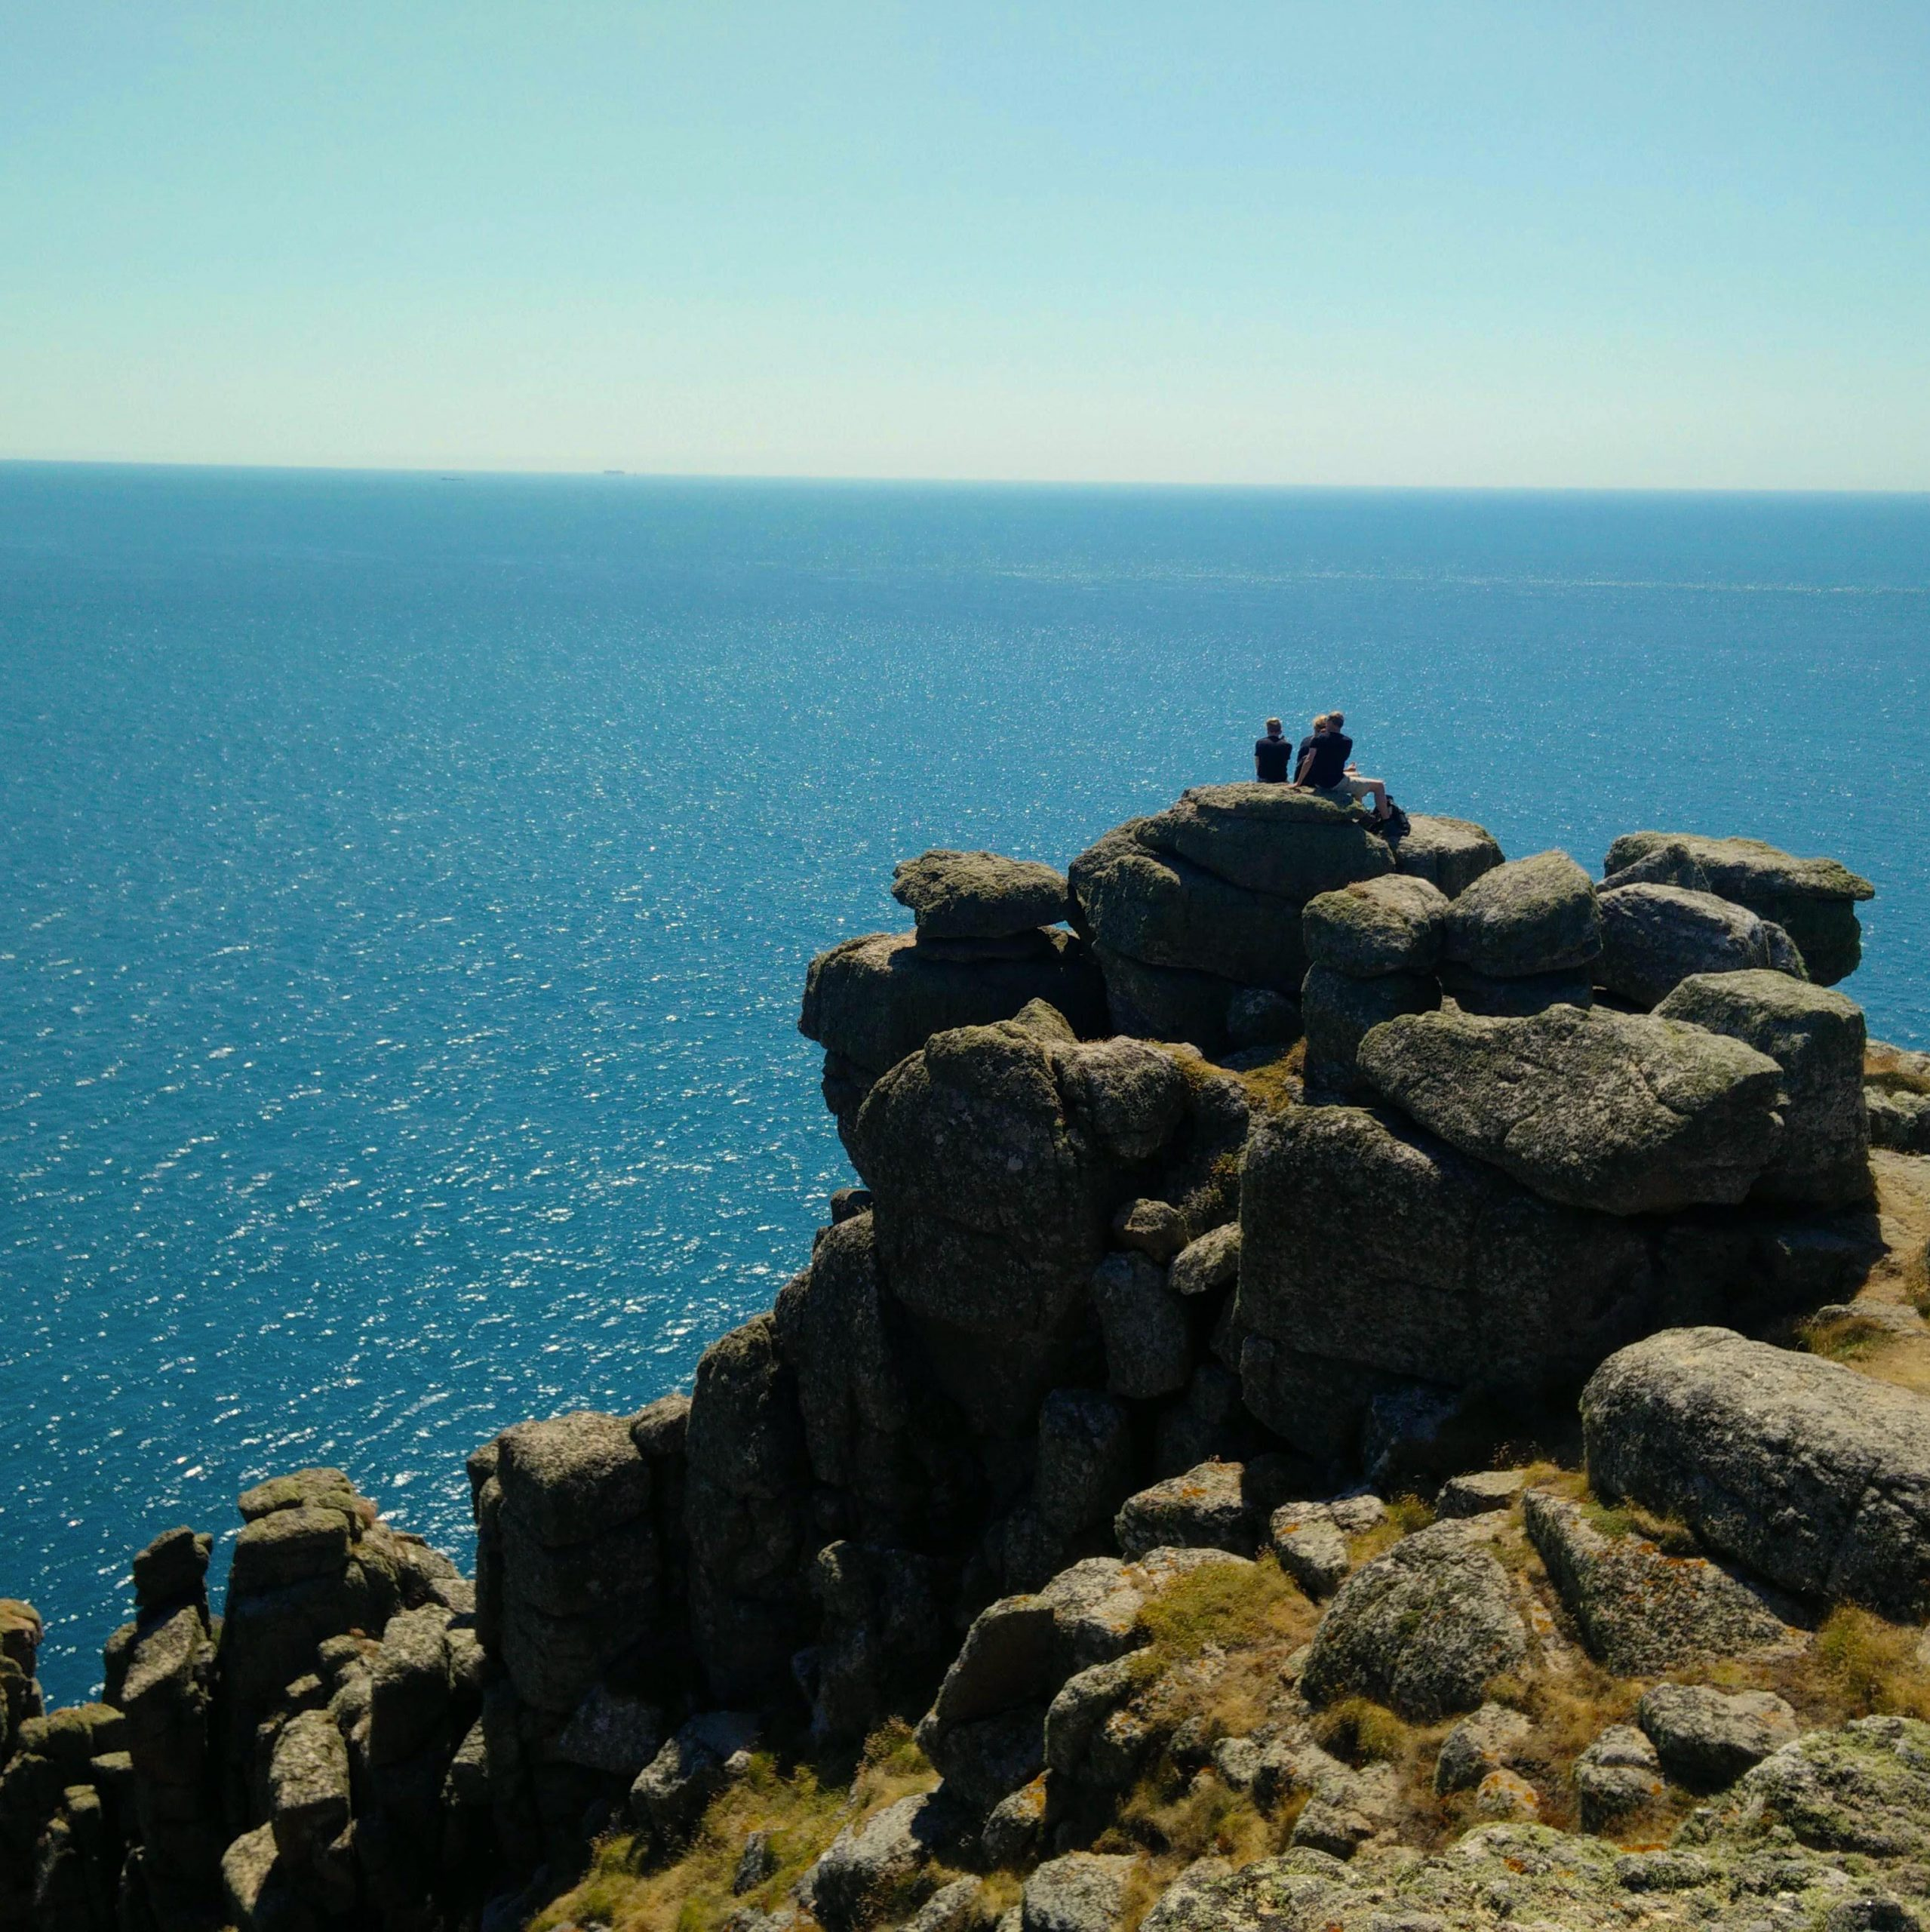 A small group overlooking the ocean from the edge of a cliff at Cornwall.